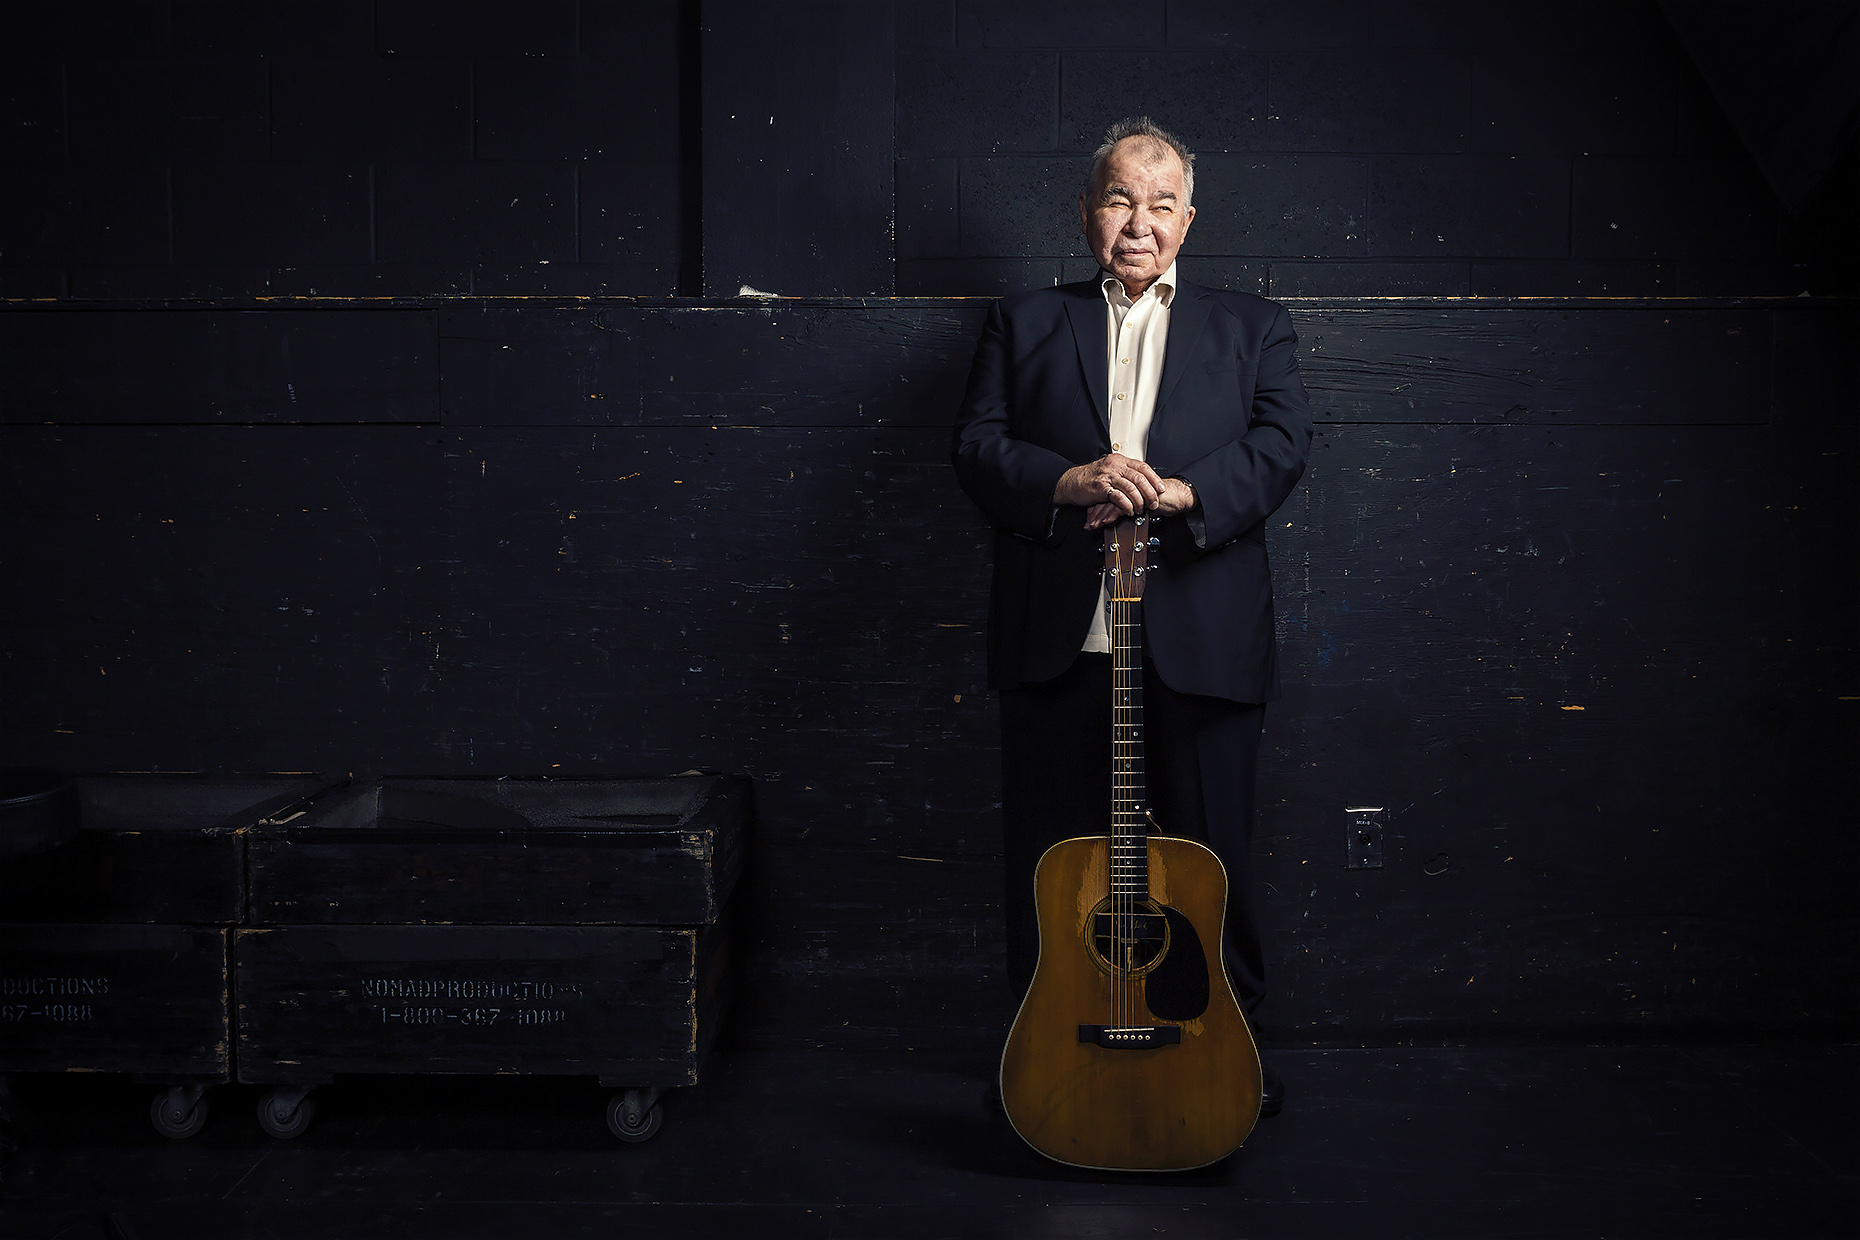 John Prine, Singer, Songwriter • Jason Grow Photography